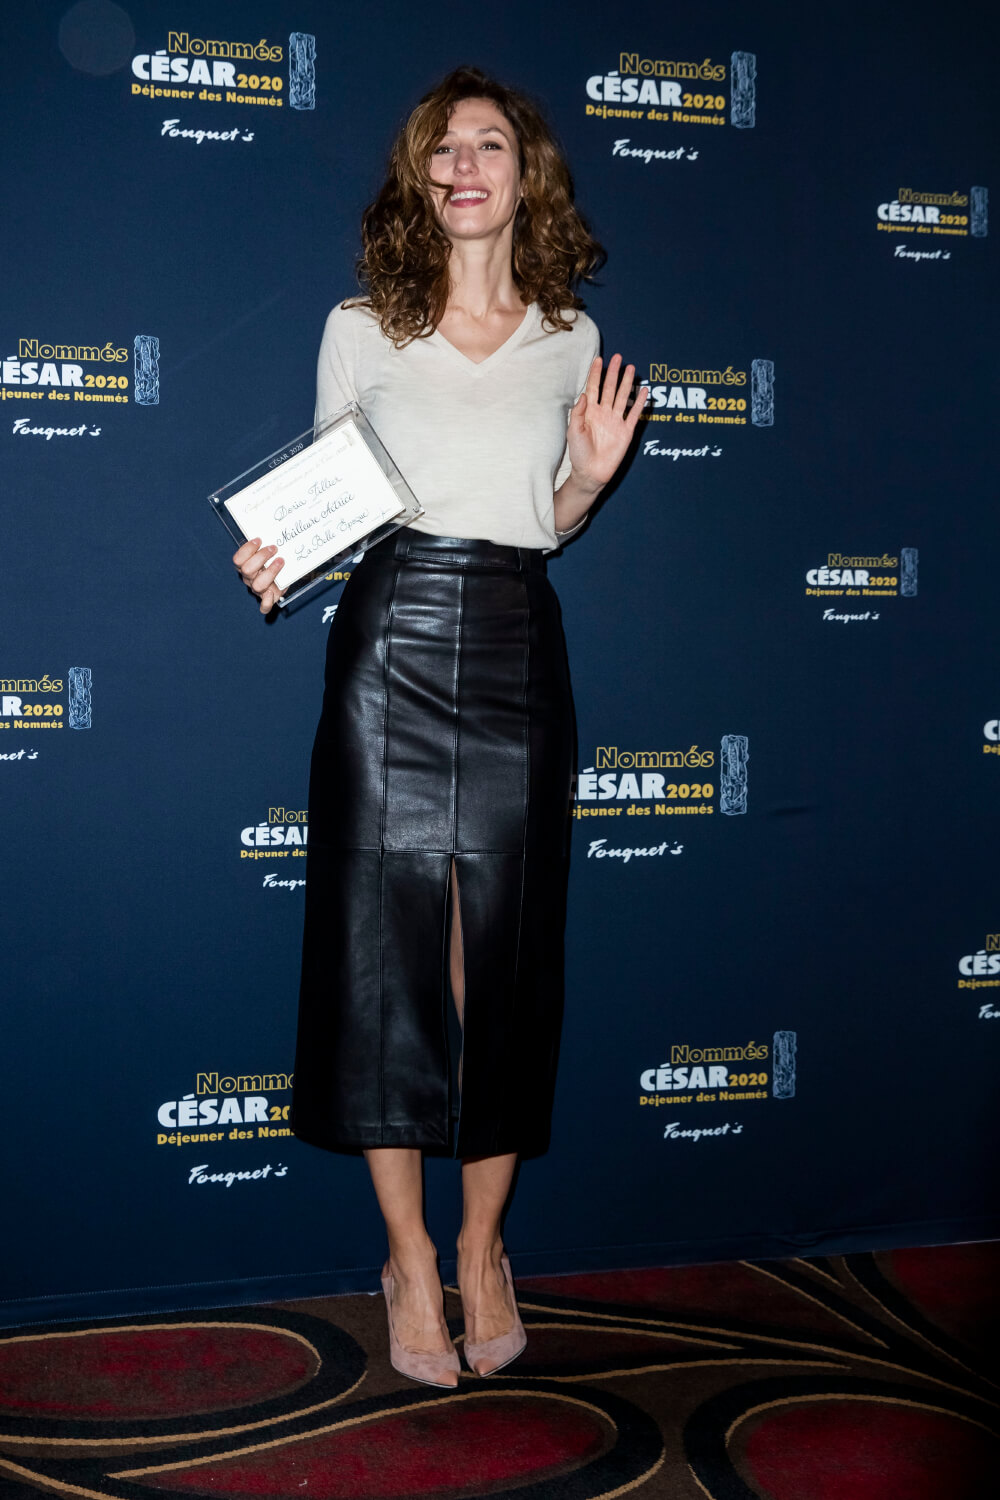 Doria Tillier attending the Cesar 2020 nominee luncheon